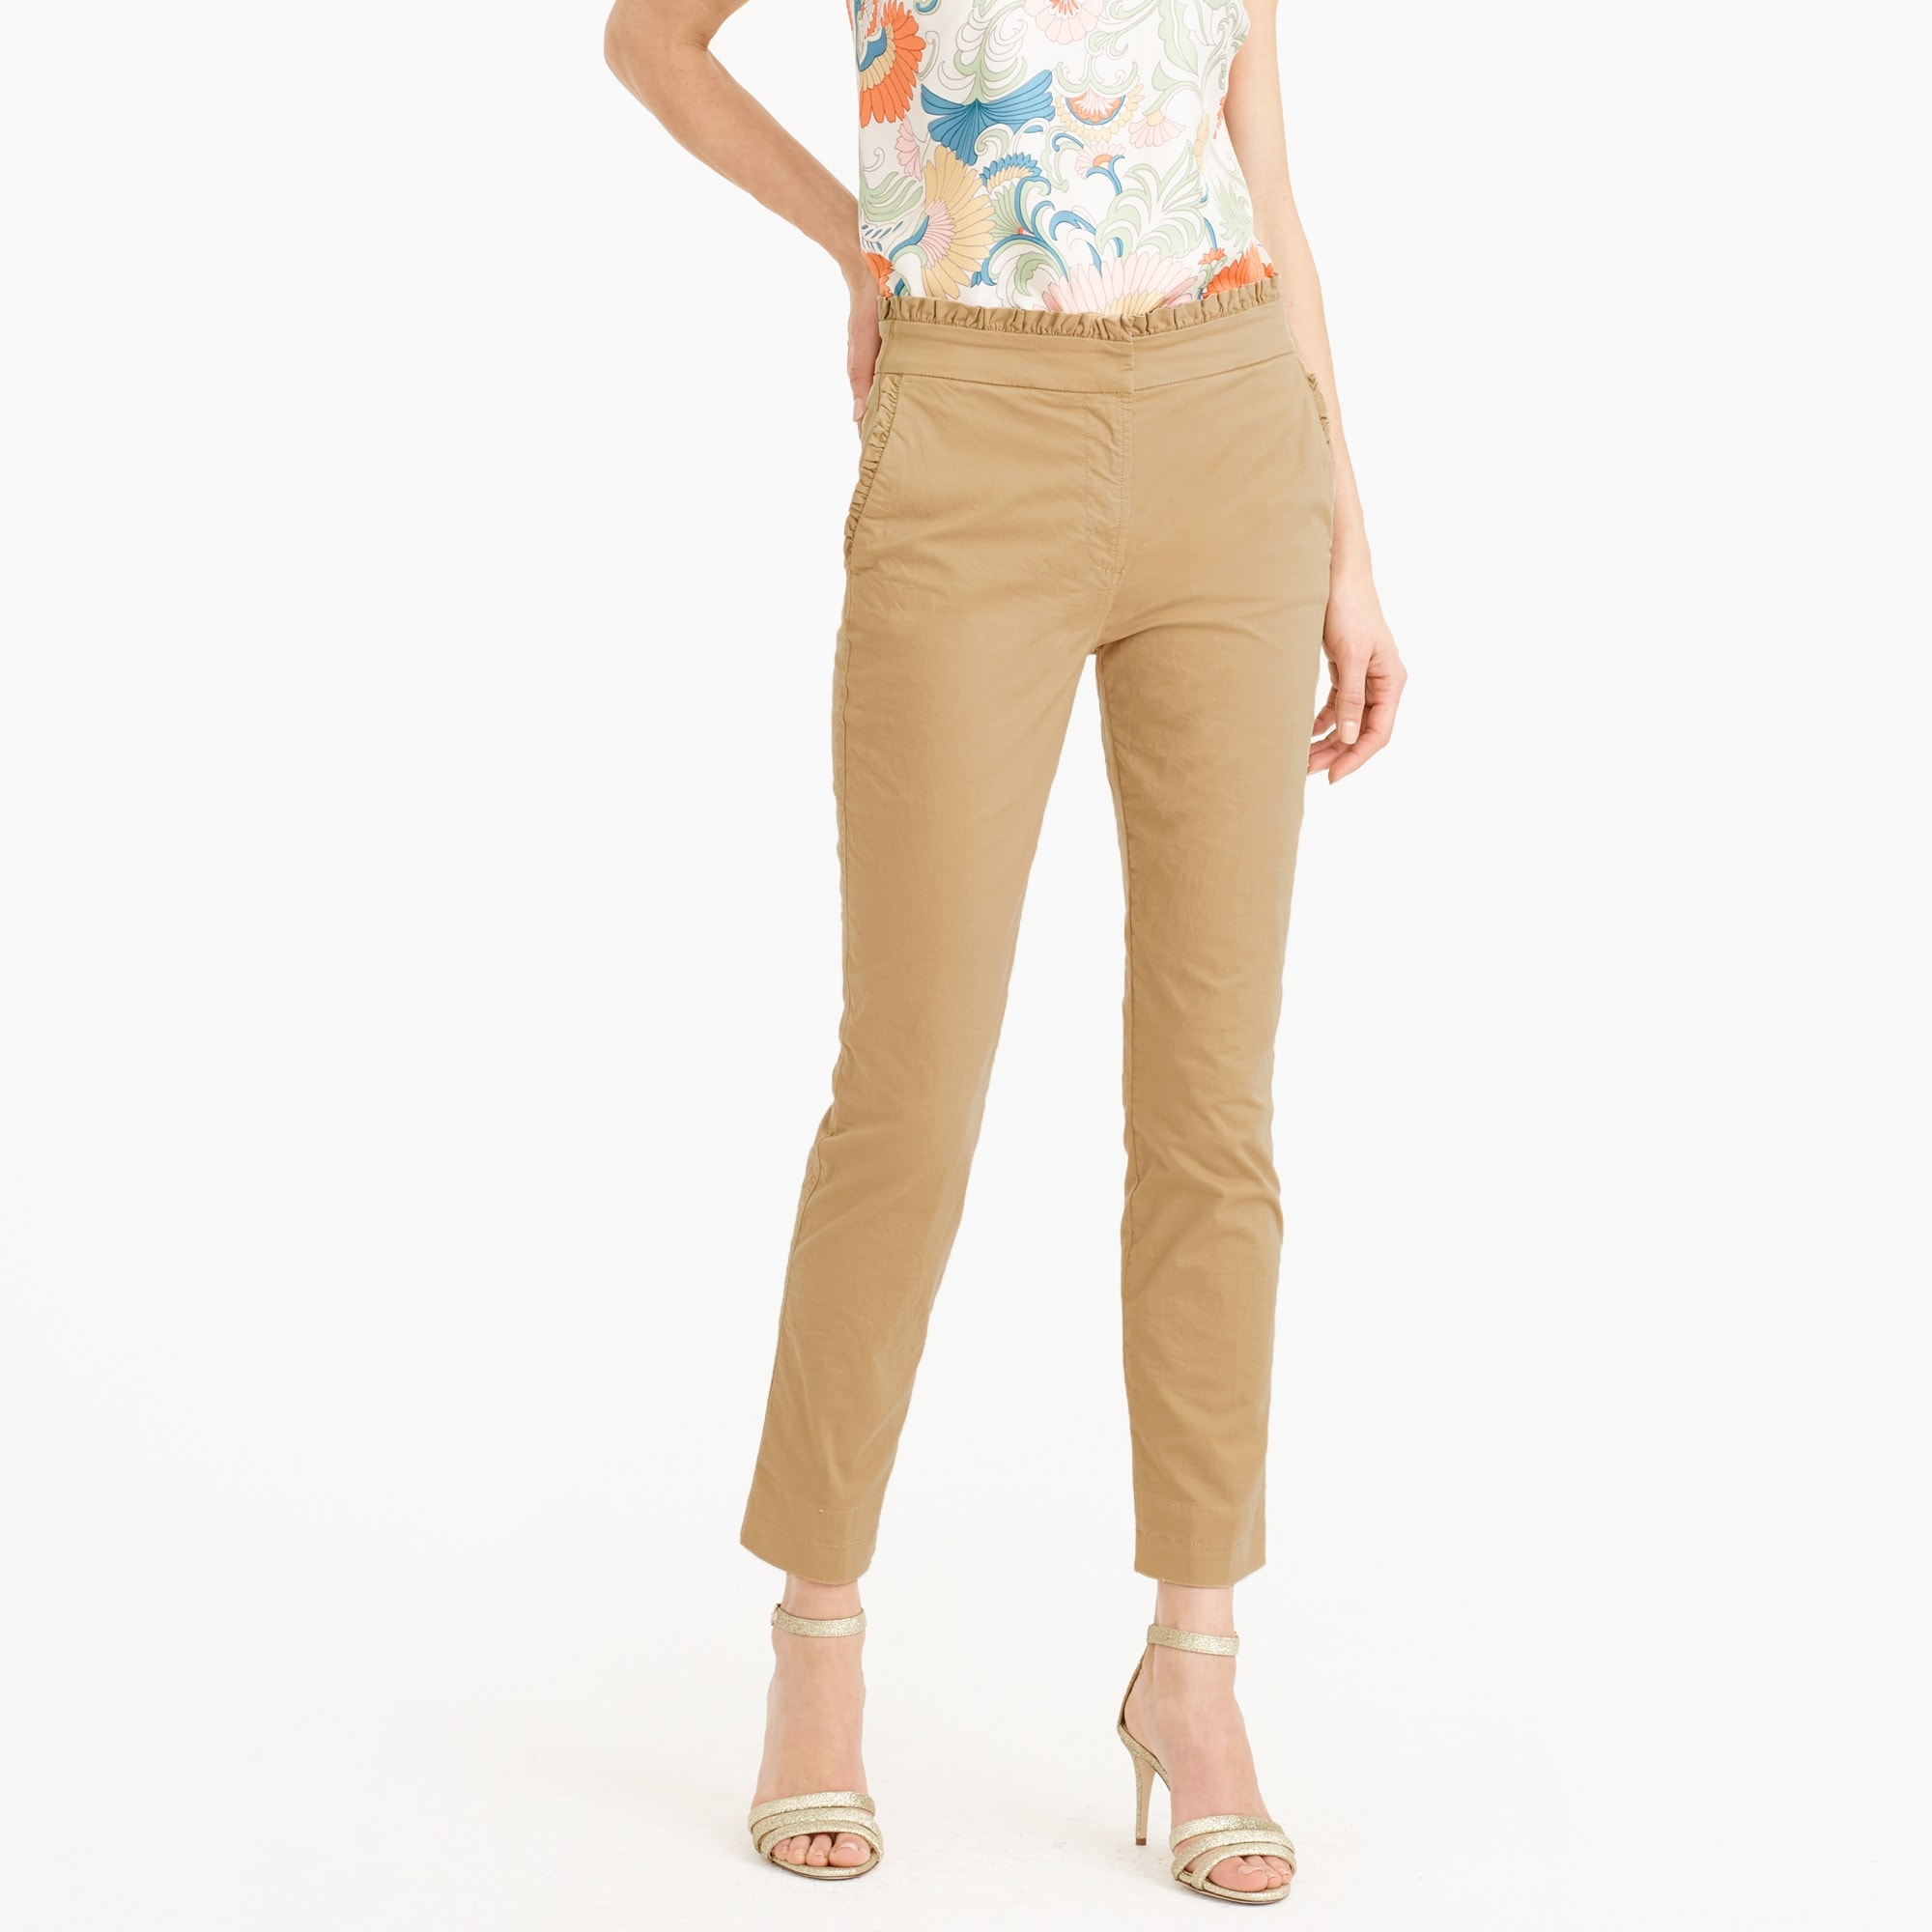 Image 1 for Tall cropped ruffle chino pant